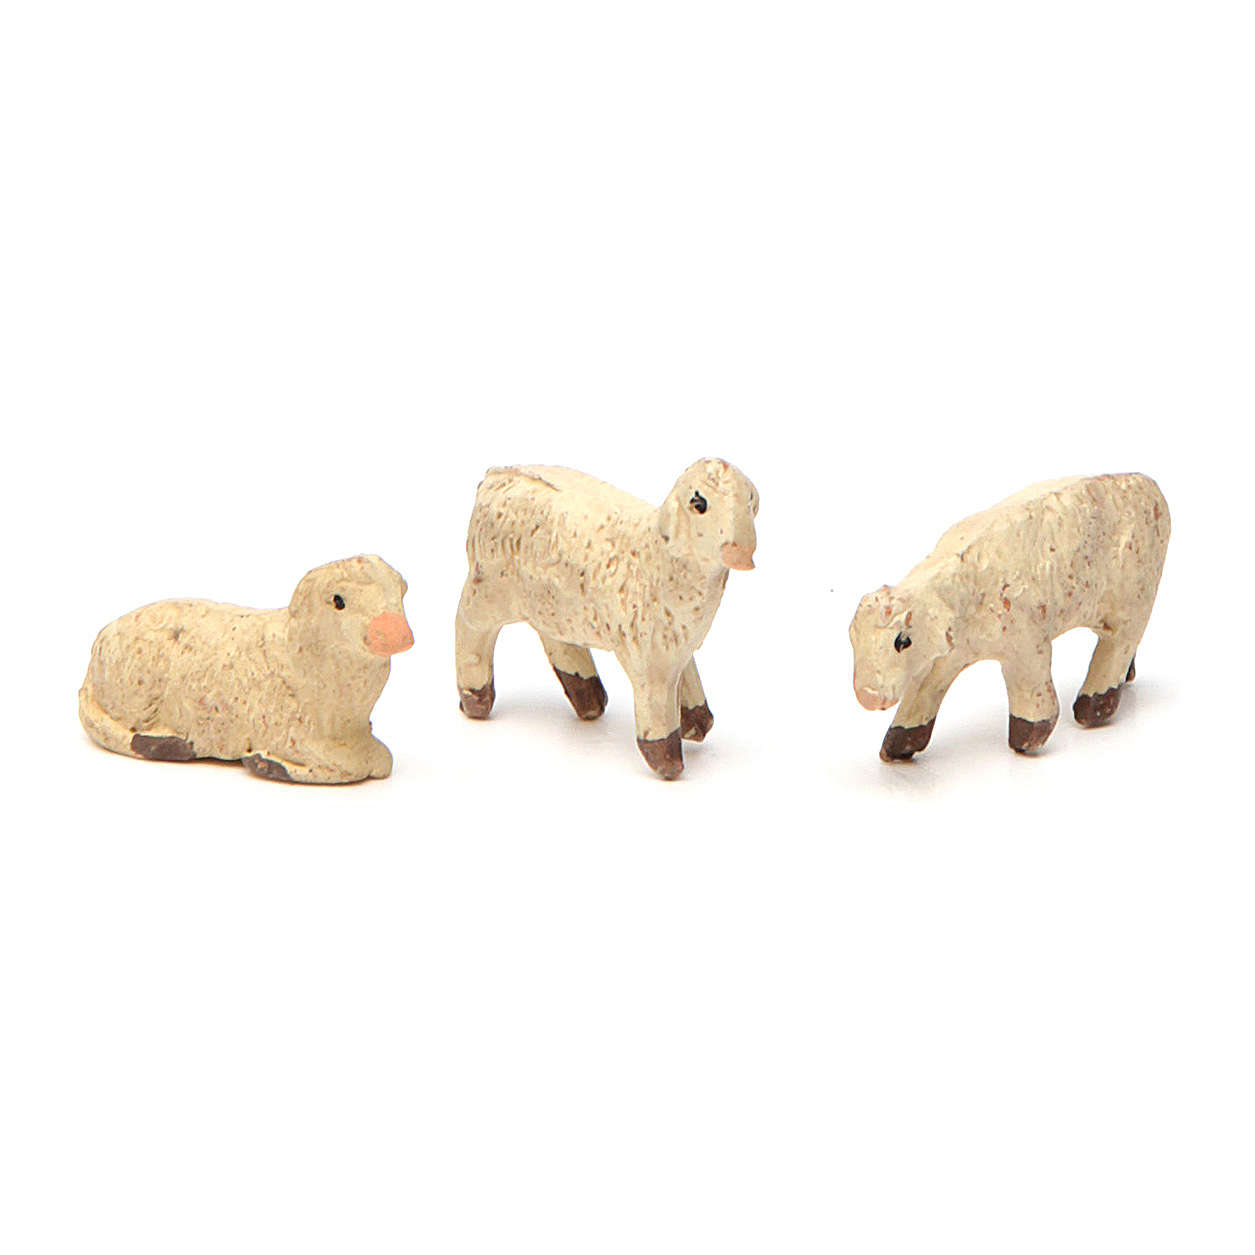 Terracotta sheep for Neapolitan Nativity Scene 4 cm, set of 3 4